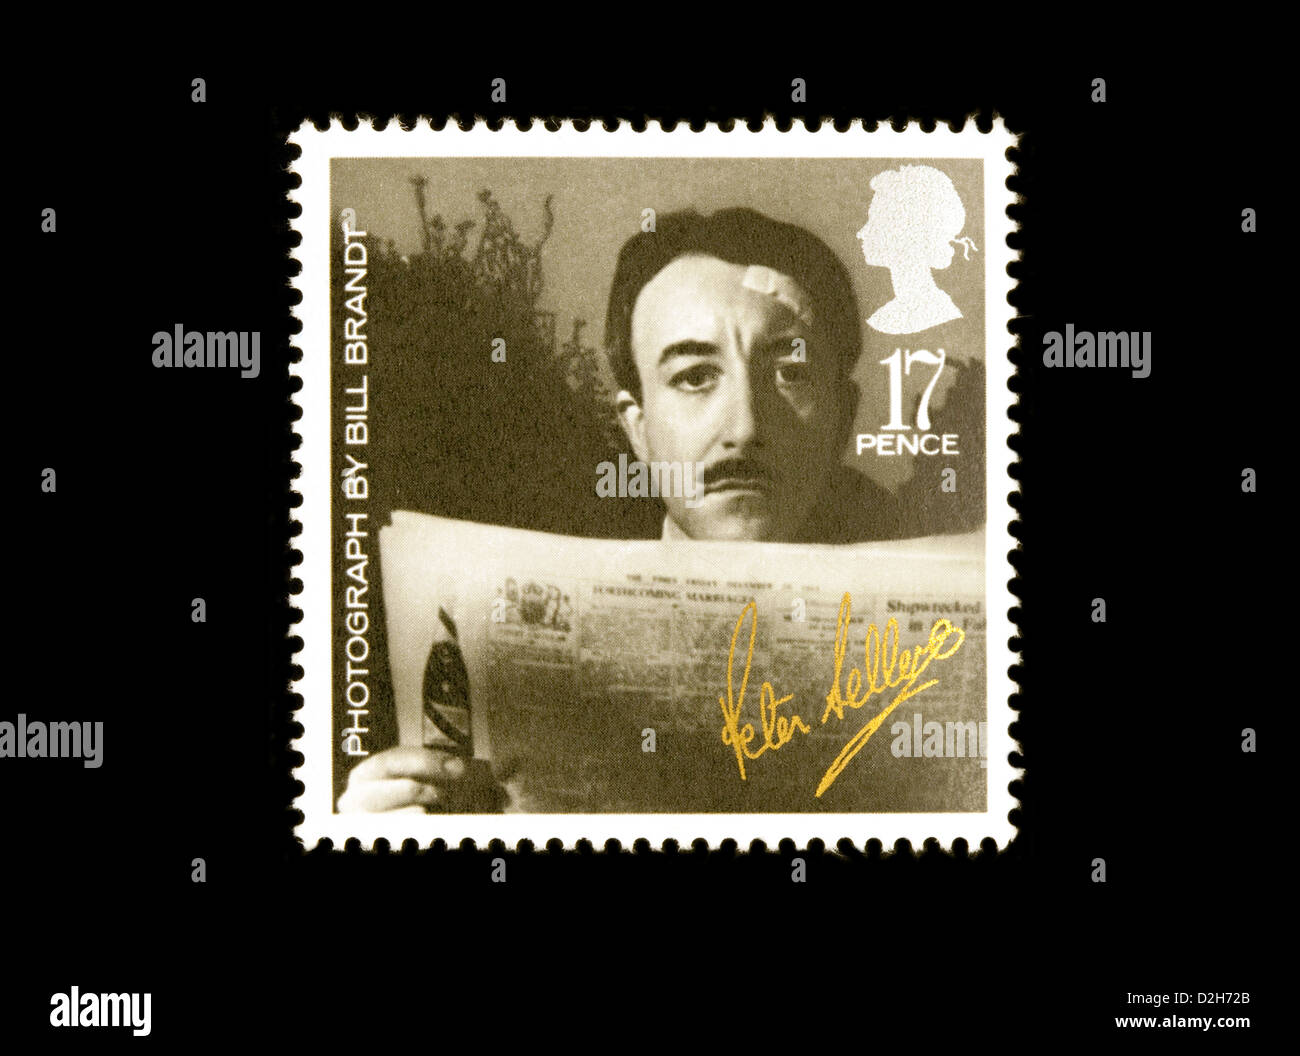 1985 British stamp featuring a photograph of the actor Peter sellers taken by Bill Brandt, UK, for British Film - Stock Image